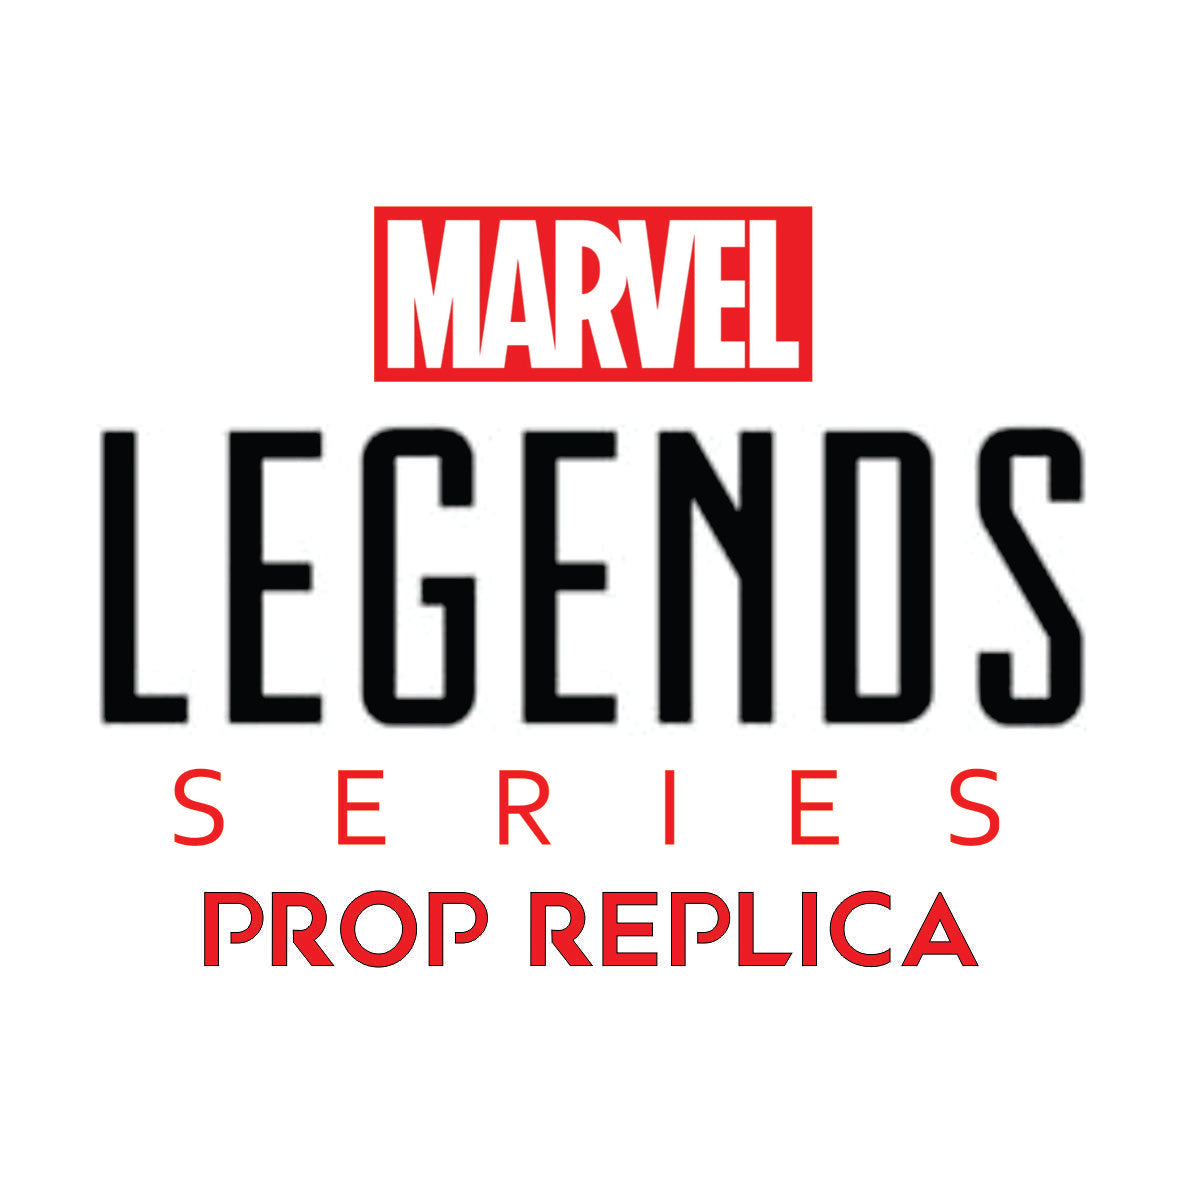 Marvel Legends Prop Replica